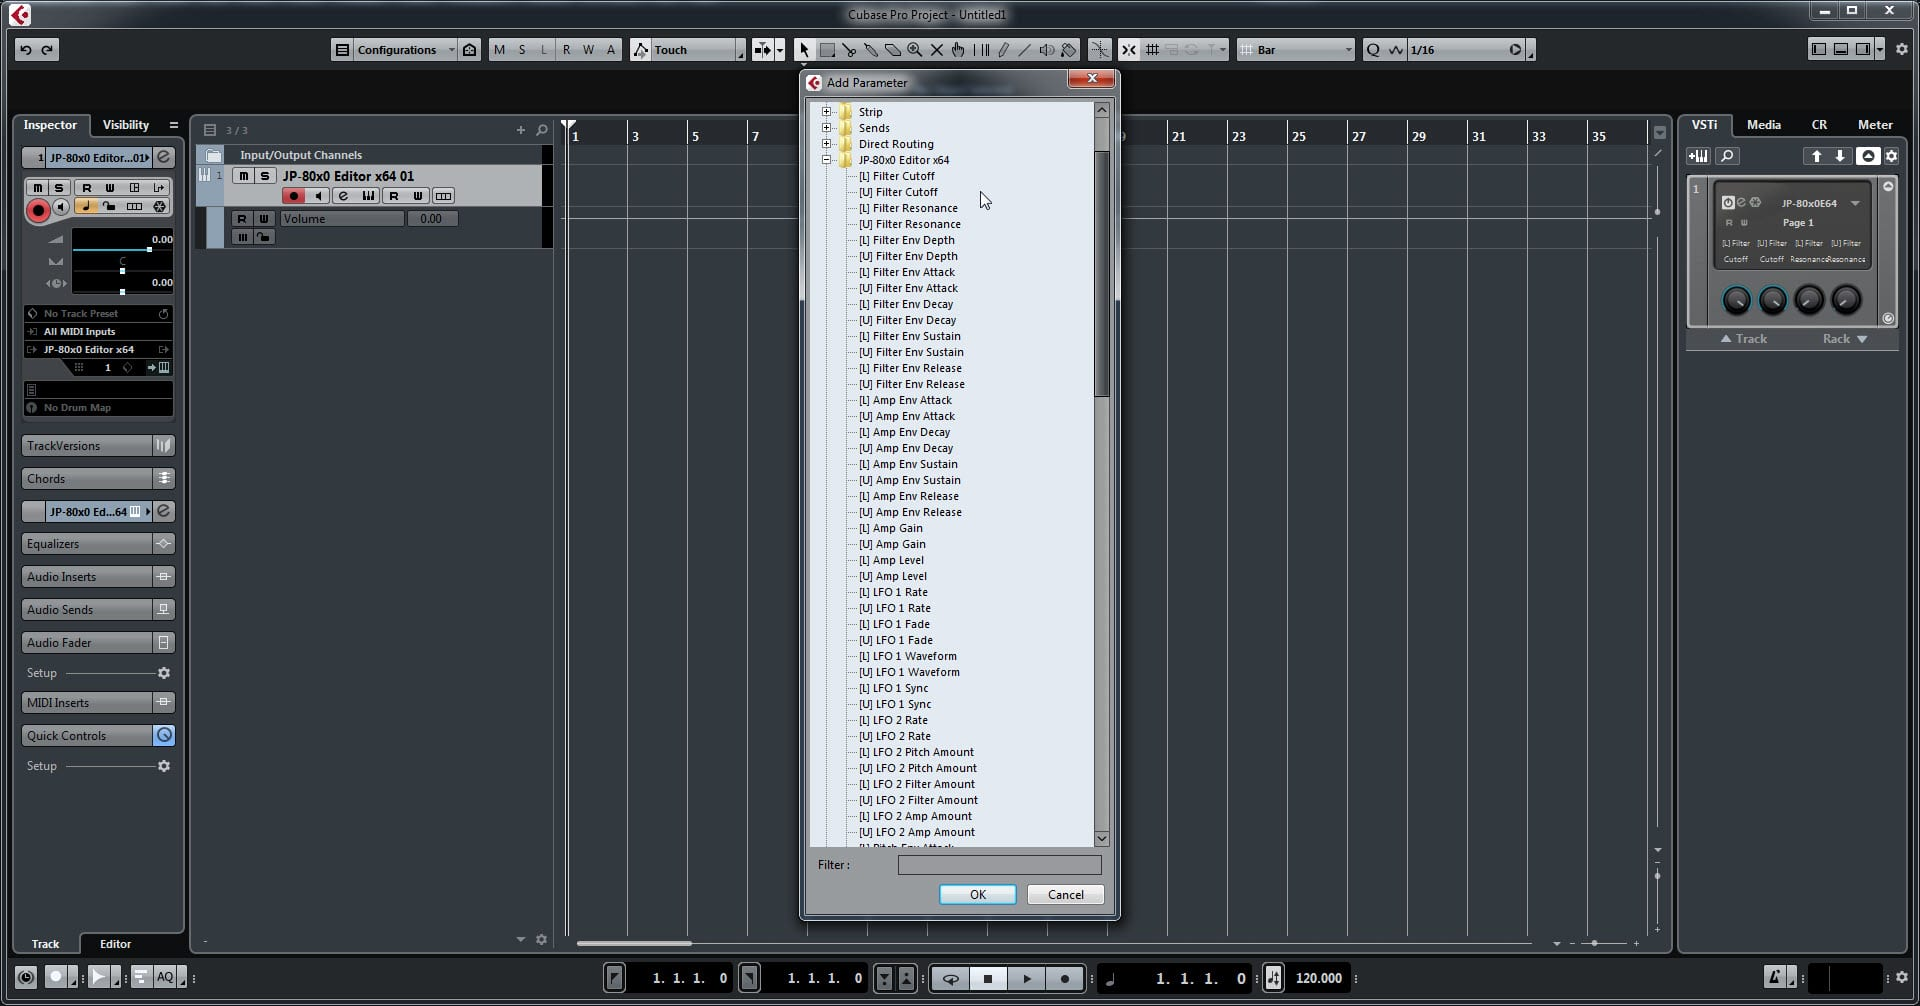 Steinberg Cubase Config - Choose Desired Parameter From the List